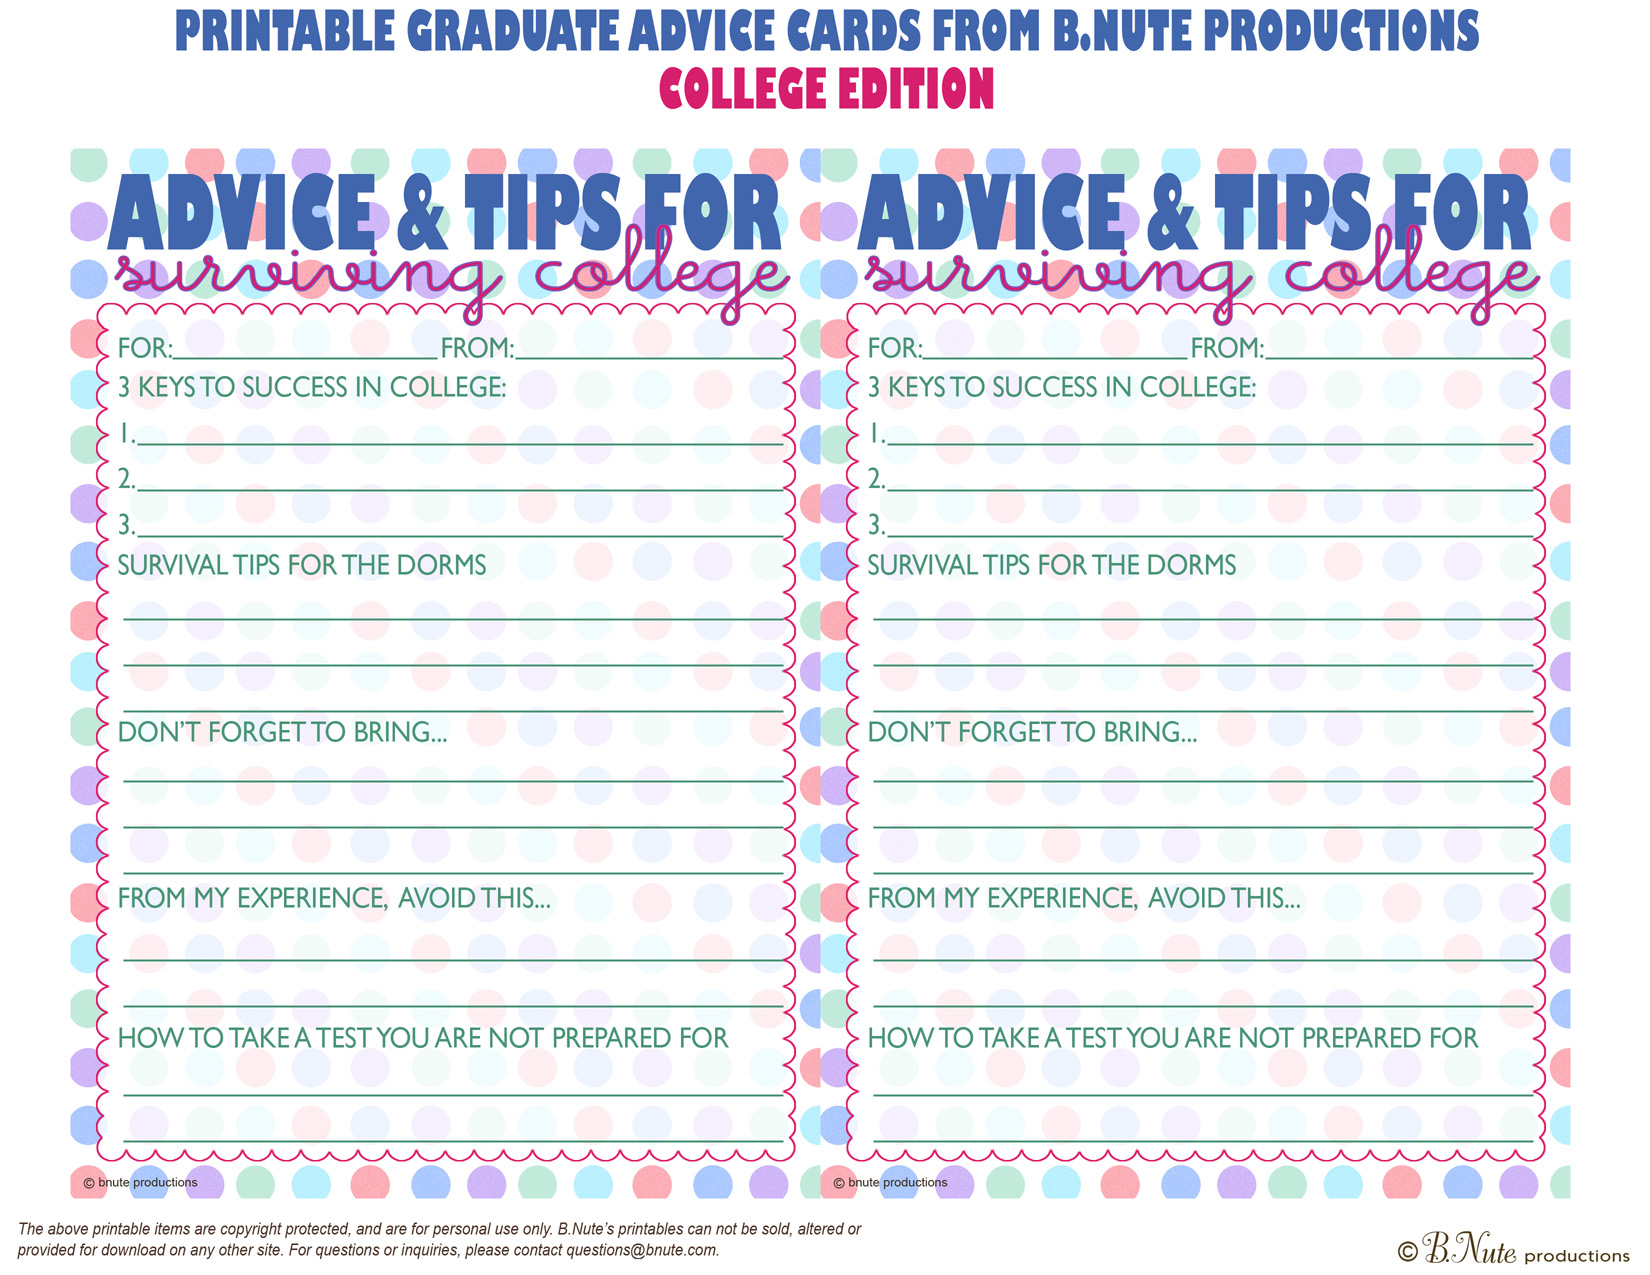 Effortless image with regard to free printable graduation advice cards